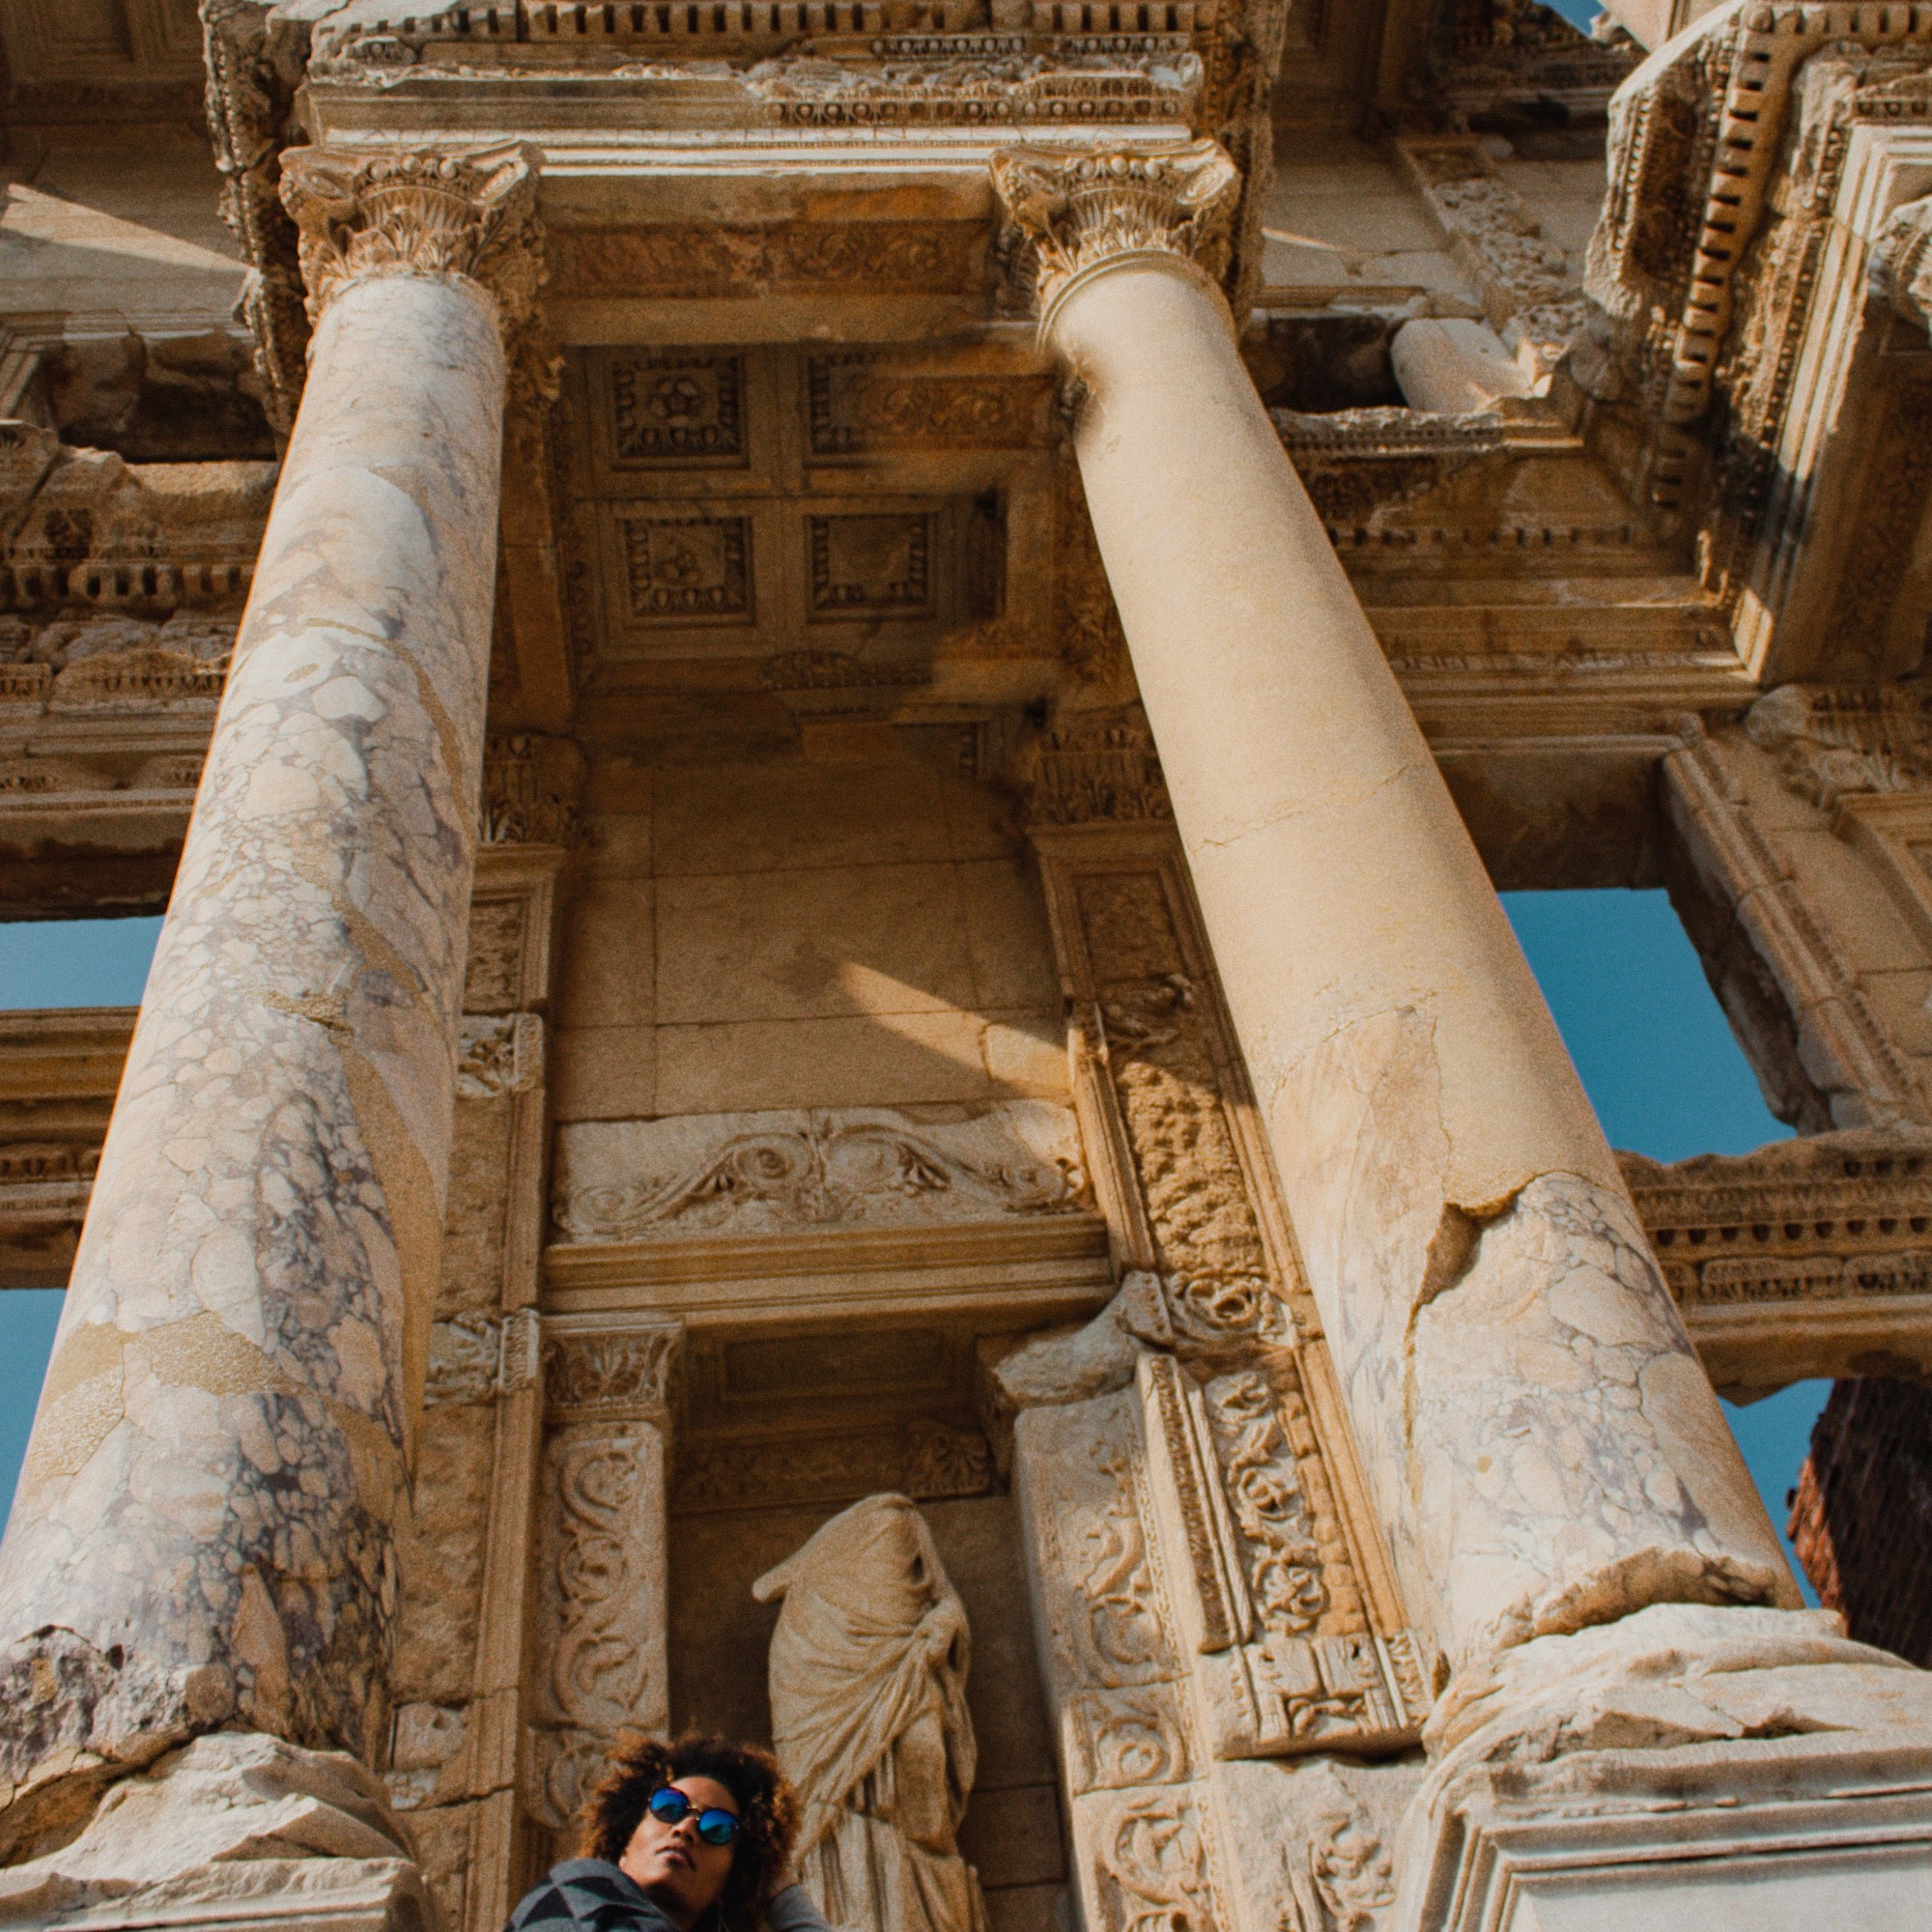 Illustrated by Sade - Pillars of the Library of Celsus in Ephesus